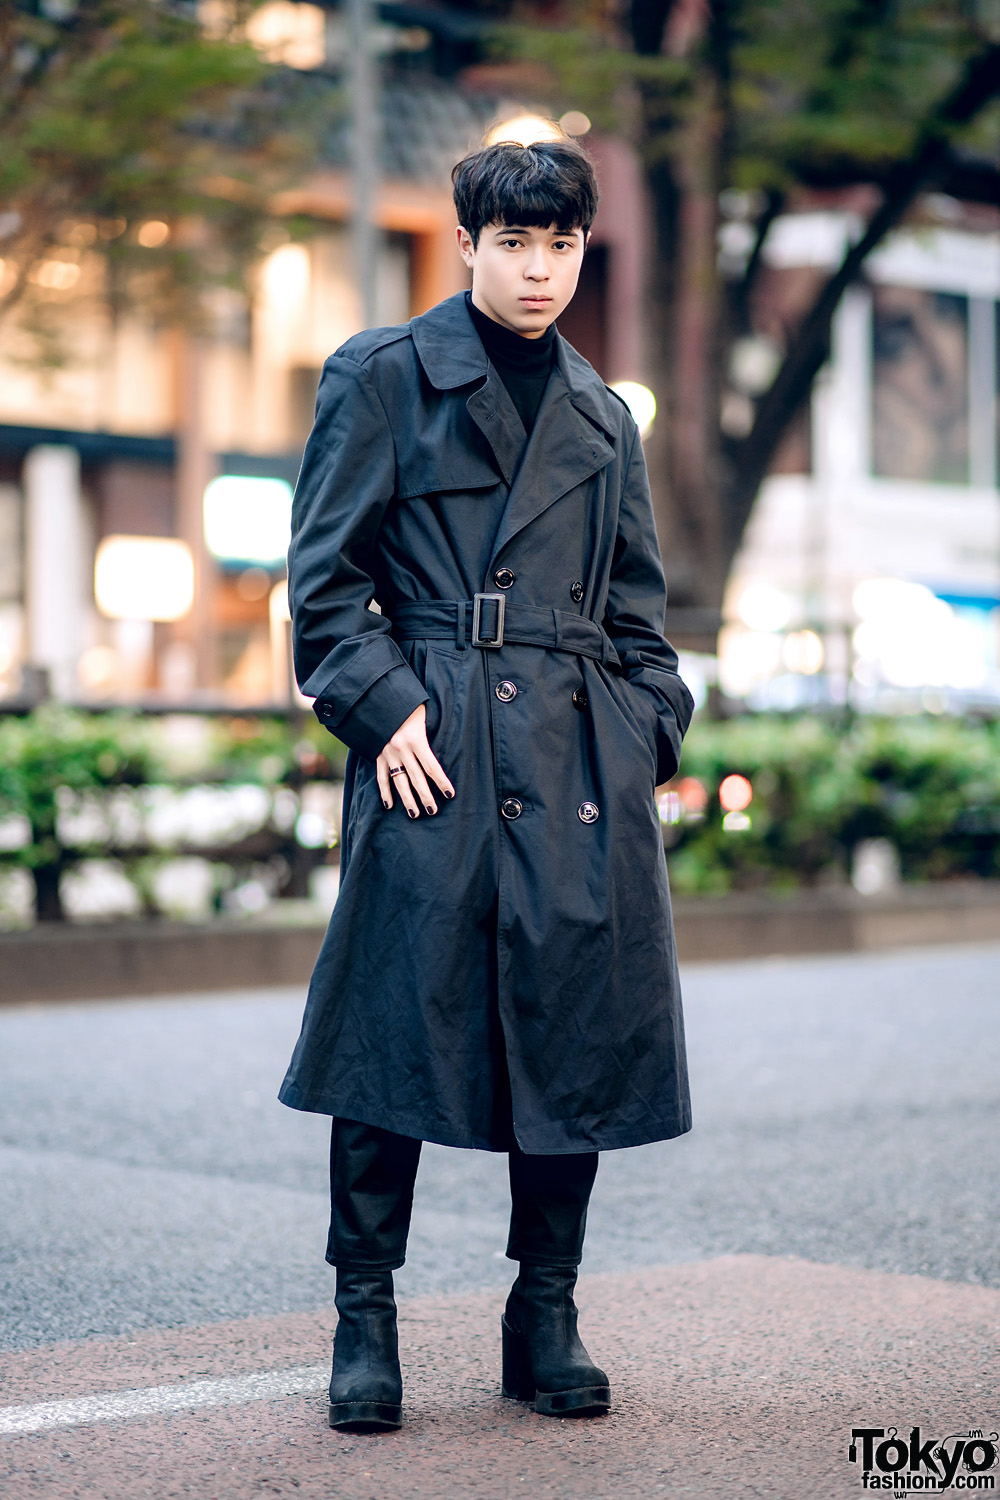 a5a7c8b9 All Black Menswear Street Style w/ Burberry Trench Coat, UNIQLO Turtleneck,  Y's Pants & Zara Chelsea Boots